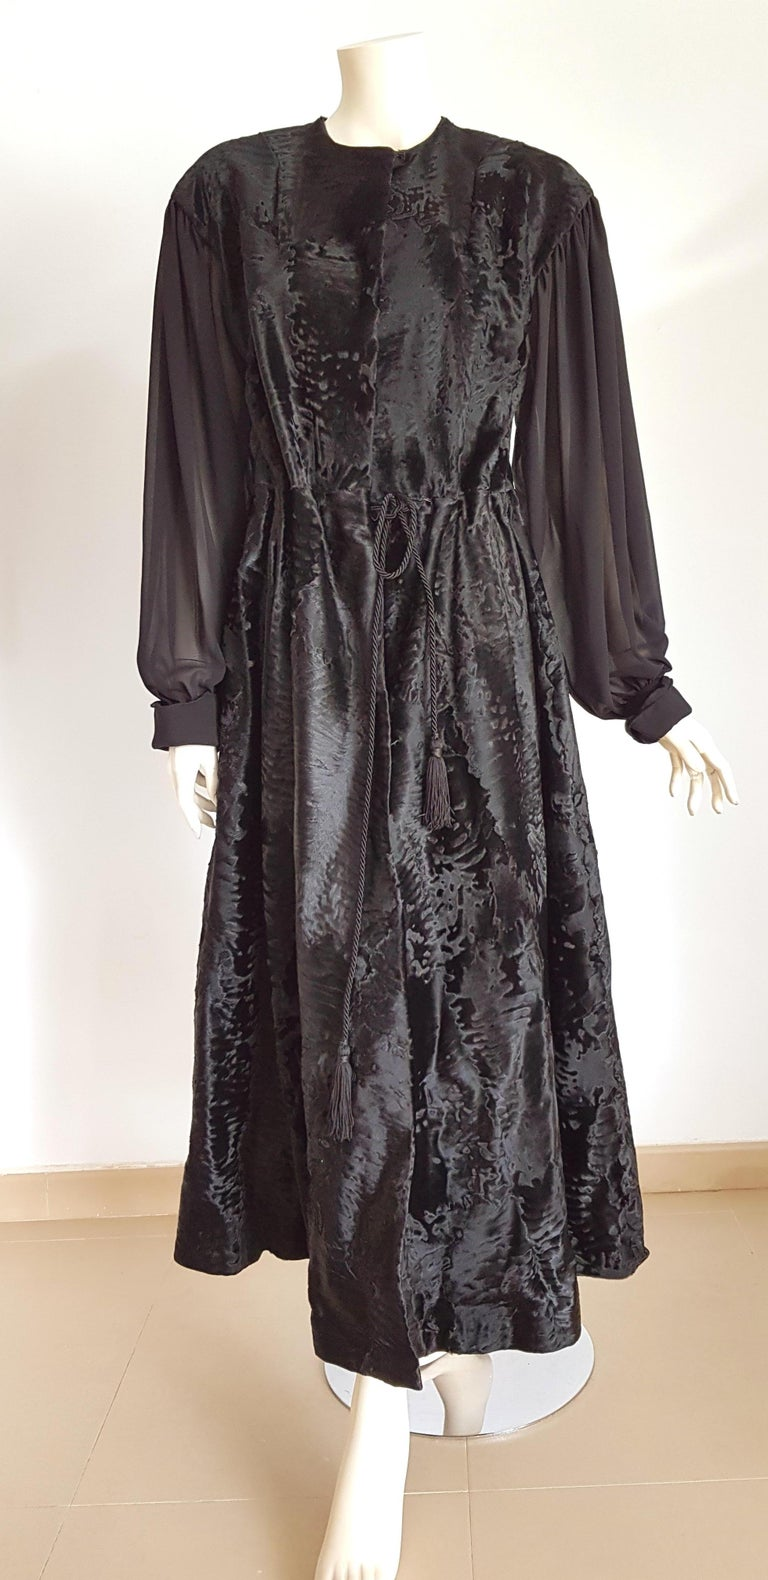 Giuliana TESO Haute Couture evening day maxidress of black wild Russian Breitschwanz Fur, with chiffon sleeves, monogram on the silk lining - Unworn, New.  SIZE: equivalent to about Small / Medium, please review approx measurements as follows in cm: